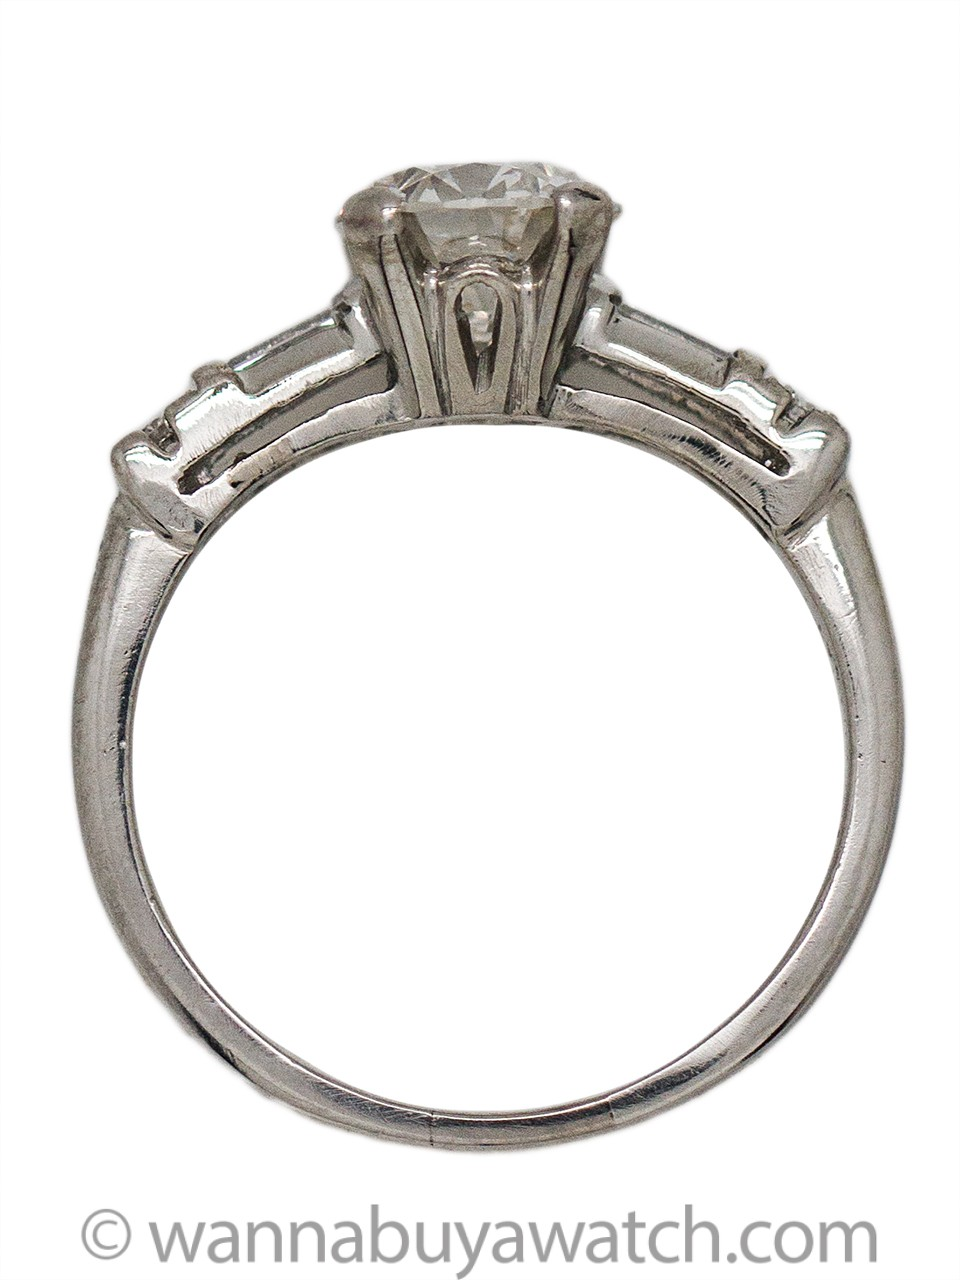 Vintage Engagement Ring 14K WG 1.23ct Transitional Cut G-SI2 circa 1950s